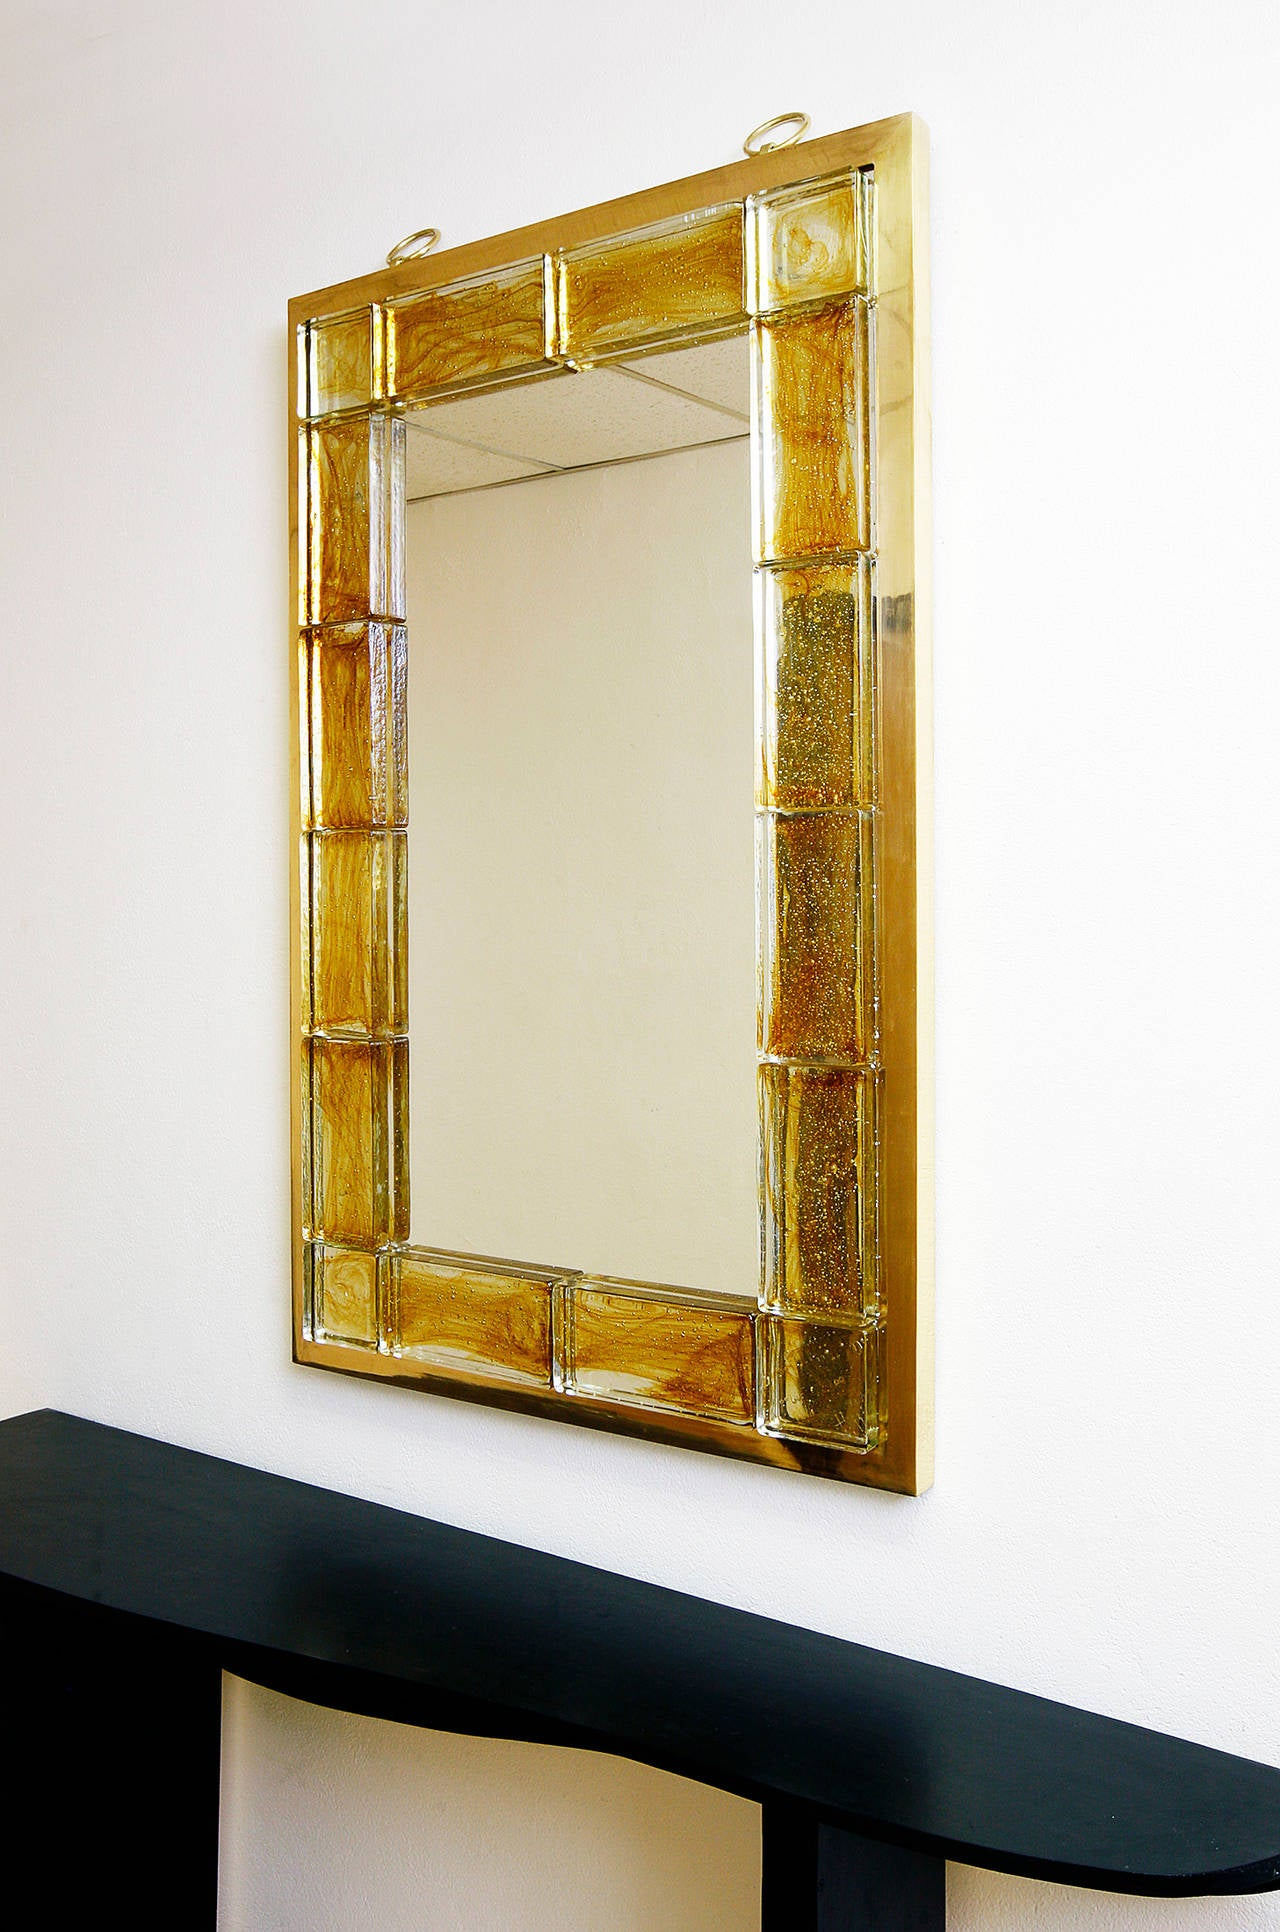 An elegant mirror by Andre Hayat with a brass exterior frame a thick glass tiles around the mirror.